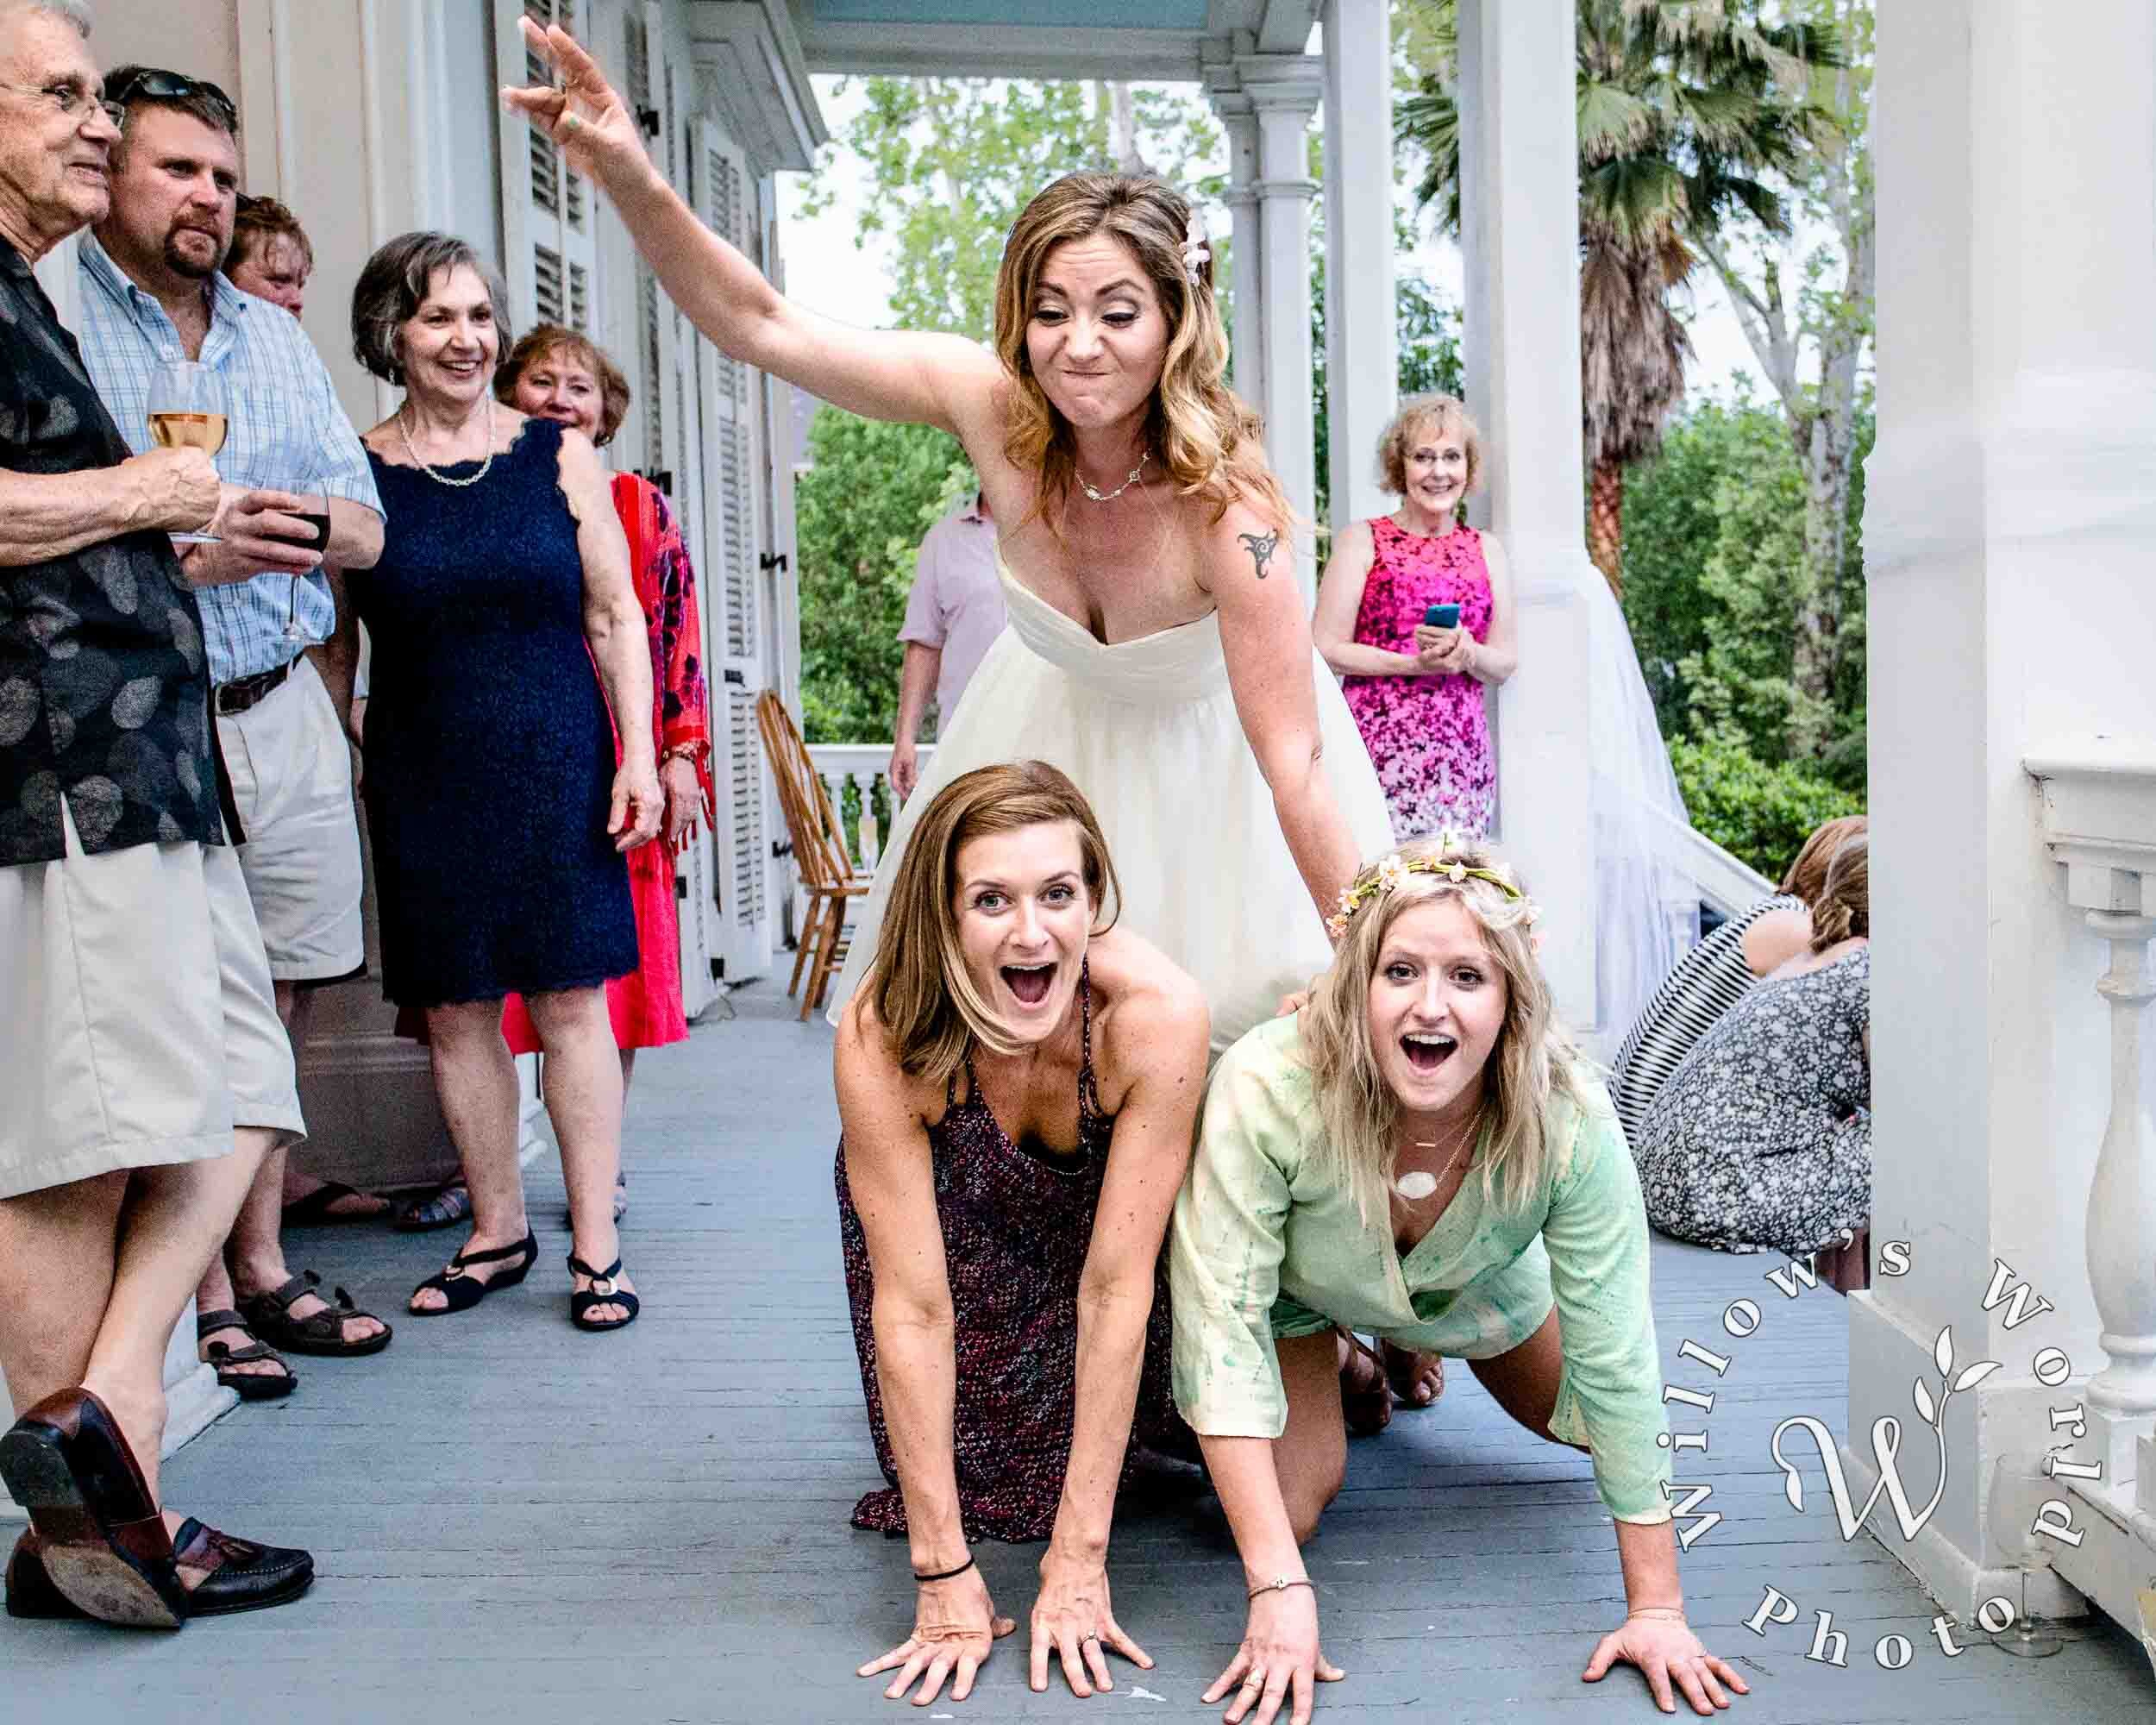 30-New-Orleans-Air-Bnb-Wedding-Reception-Photo-Willows-World-Photo.jpg